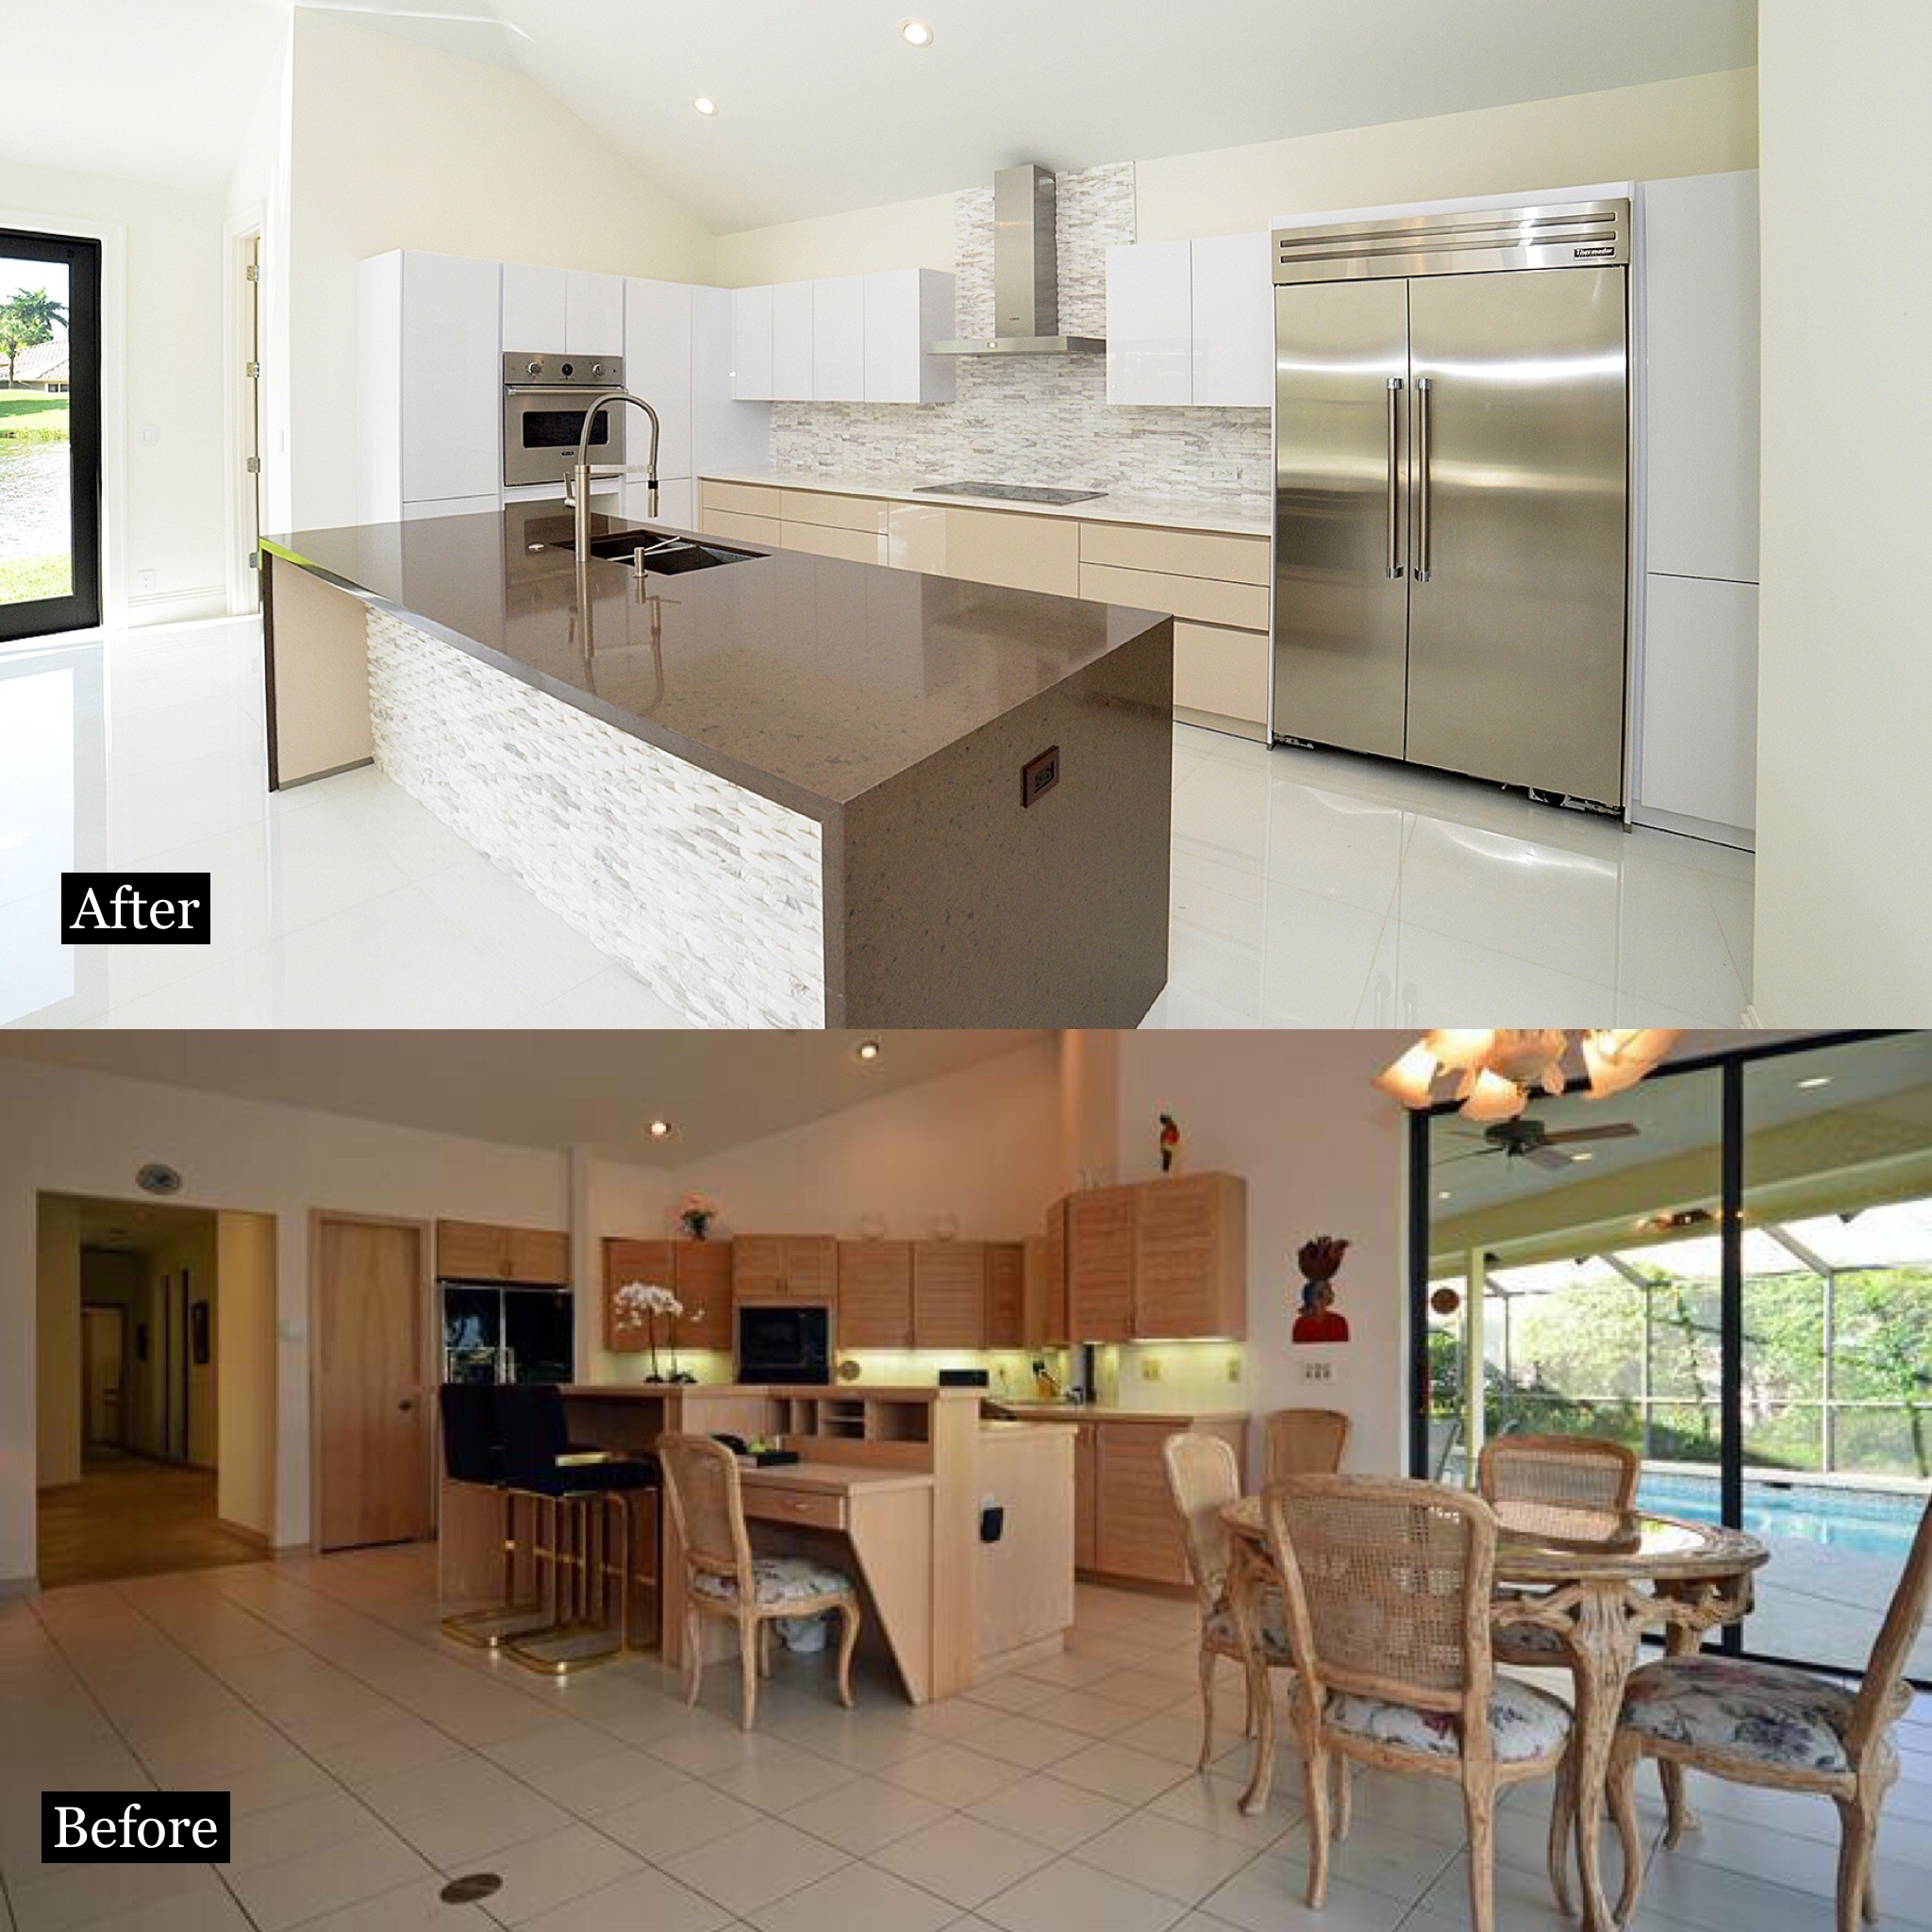 mag real estate & development transformation before after construction general contractor builder renovation south florida boca raton new custom luxury home for sale interior design st. andrews country club 7026 ayrshire lane 7.jpg